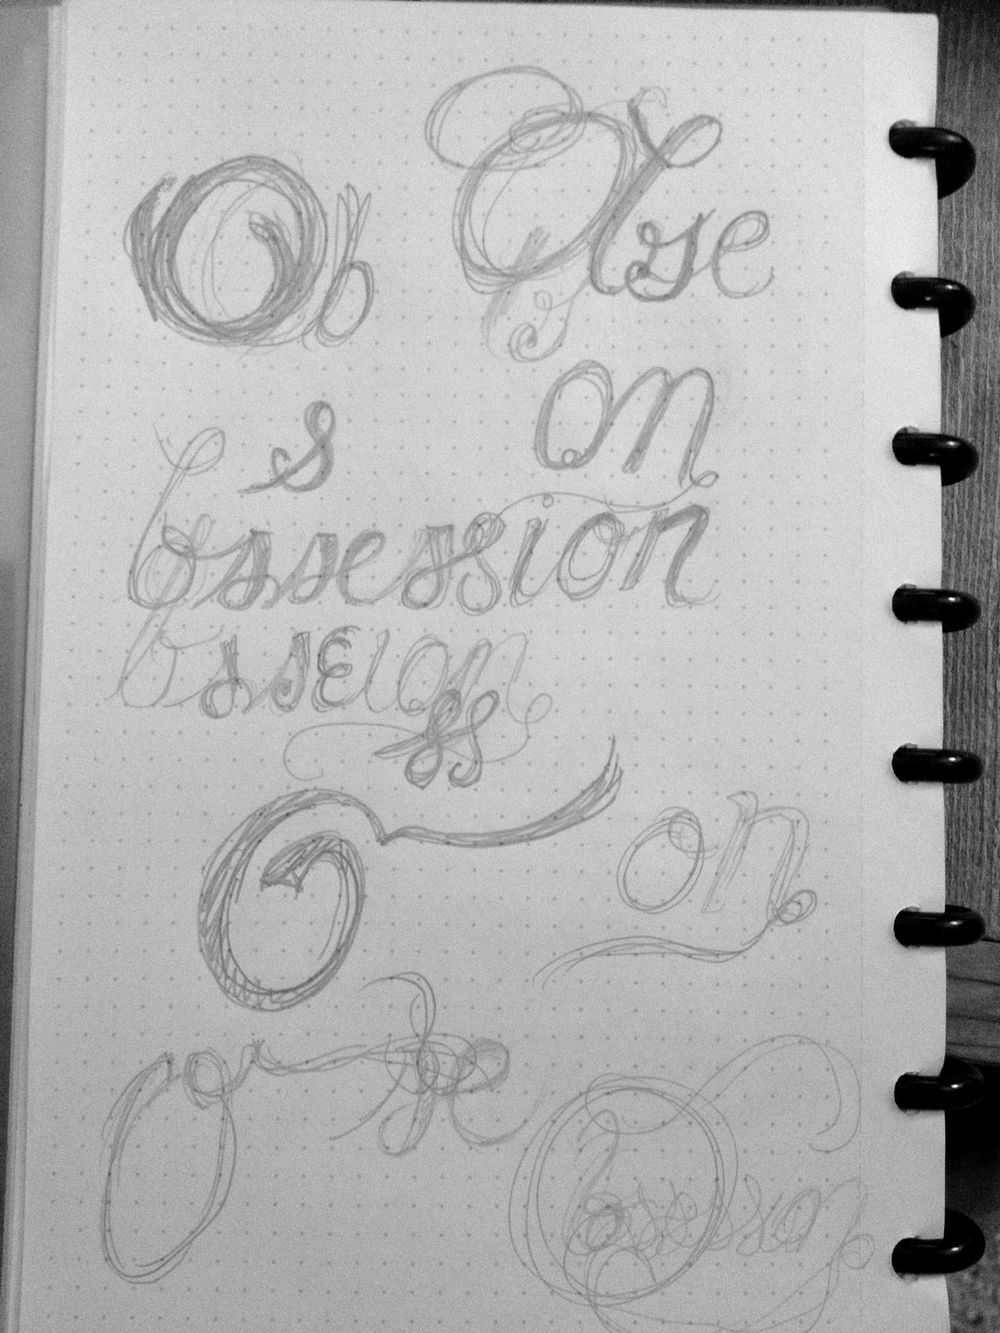 Obsession (Problem, Obsession, Solution) - image 1 - student project